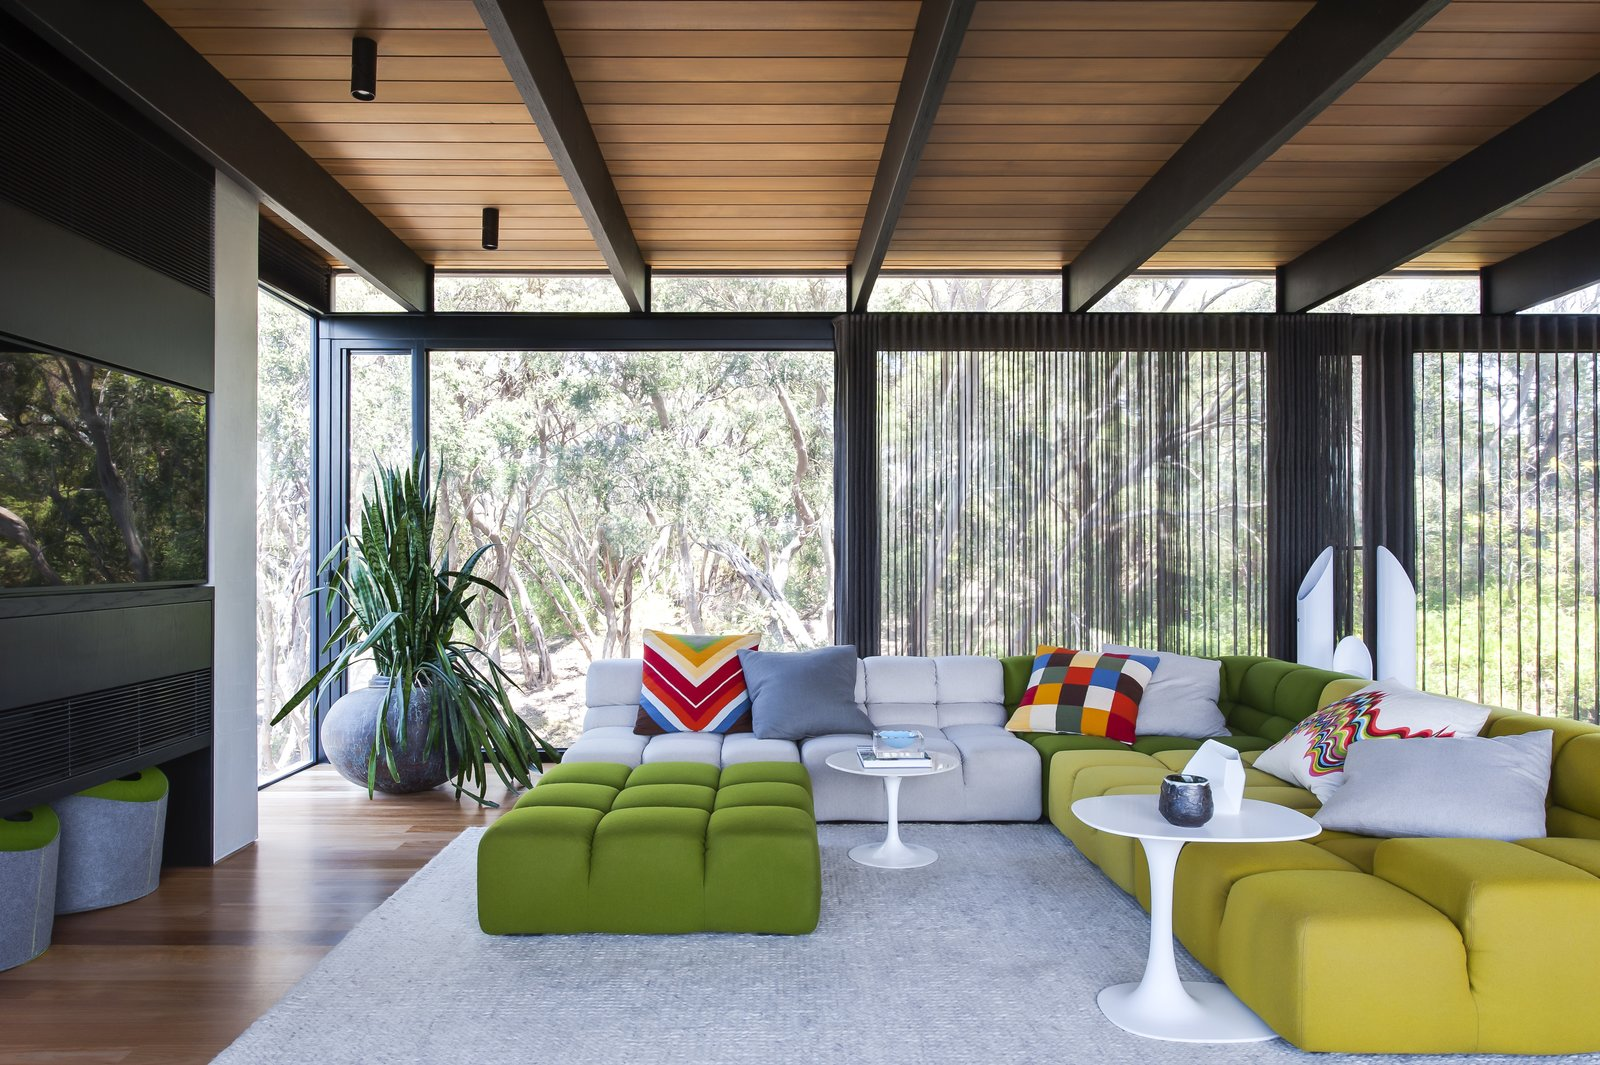 Living Room, End Tables, and Sectional  Photos from Unexpected Bursts of Color Enliven a Midcentury Pad in Australia